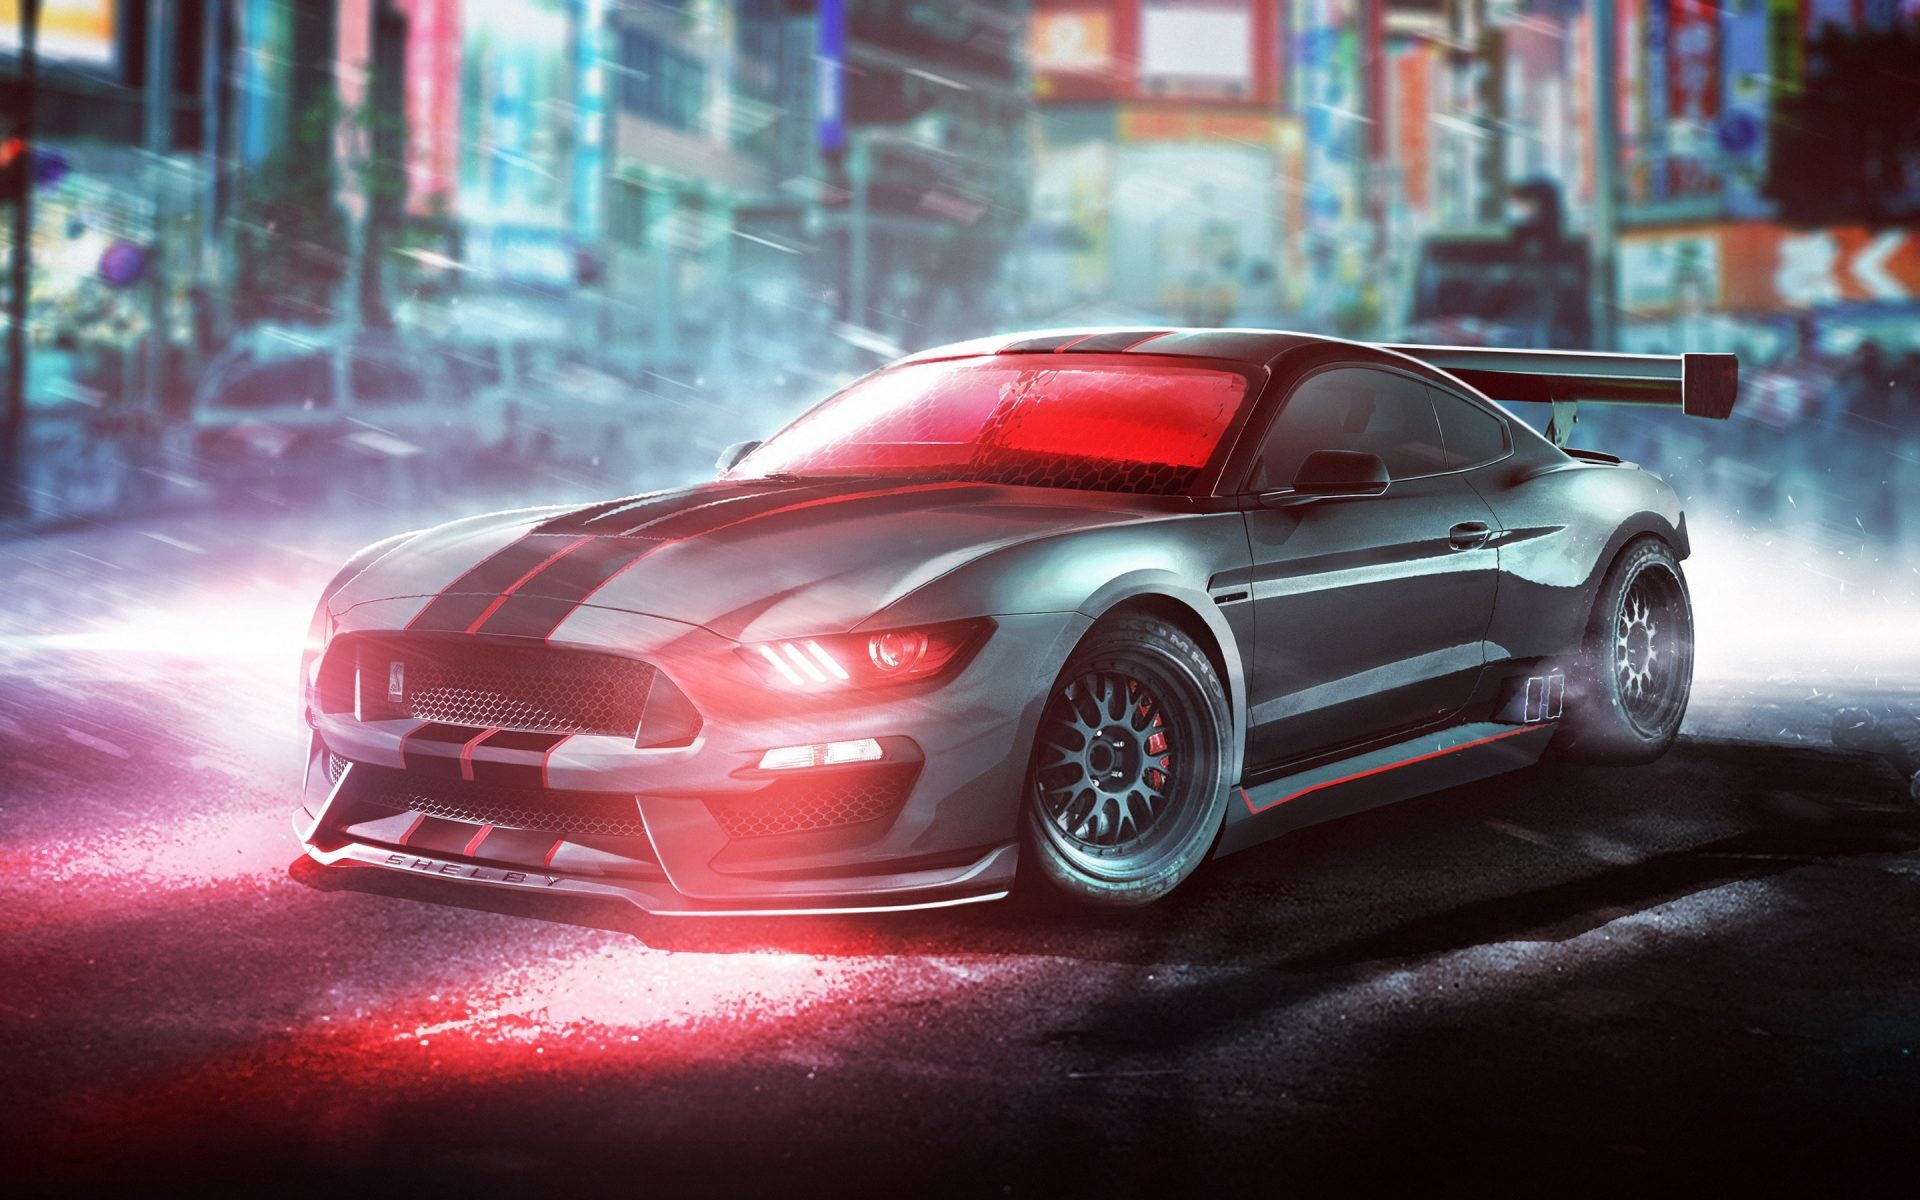 Res: 1920x1200, Cars image 4k background hd wallpaper picture cyclops ford shelby mustang  gt350r x men wide